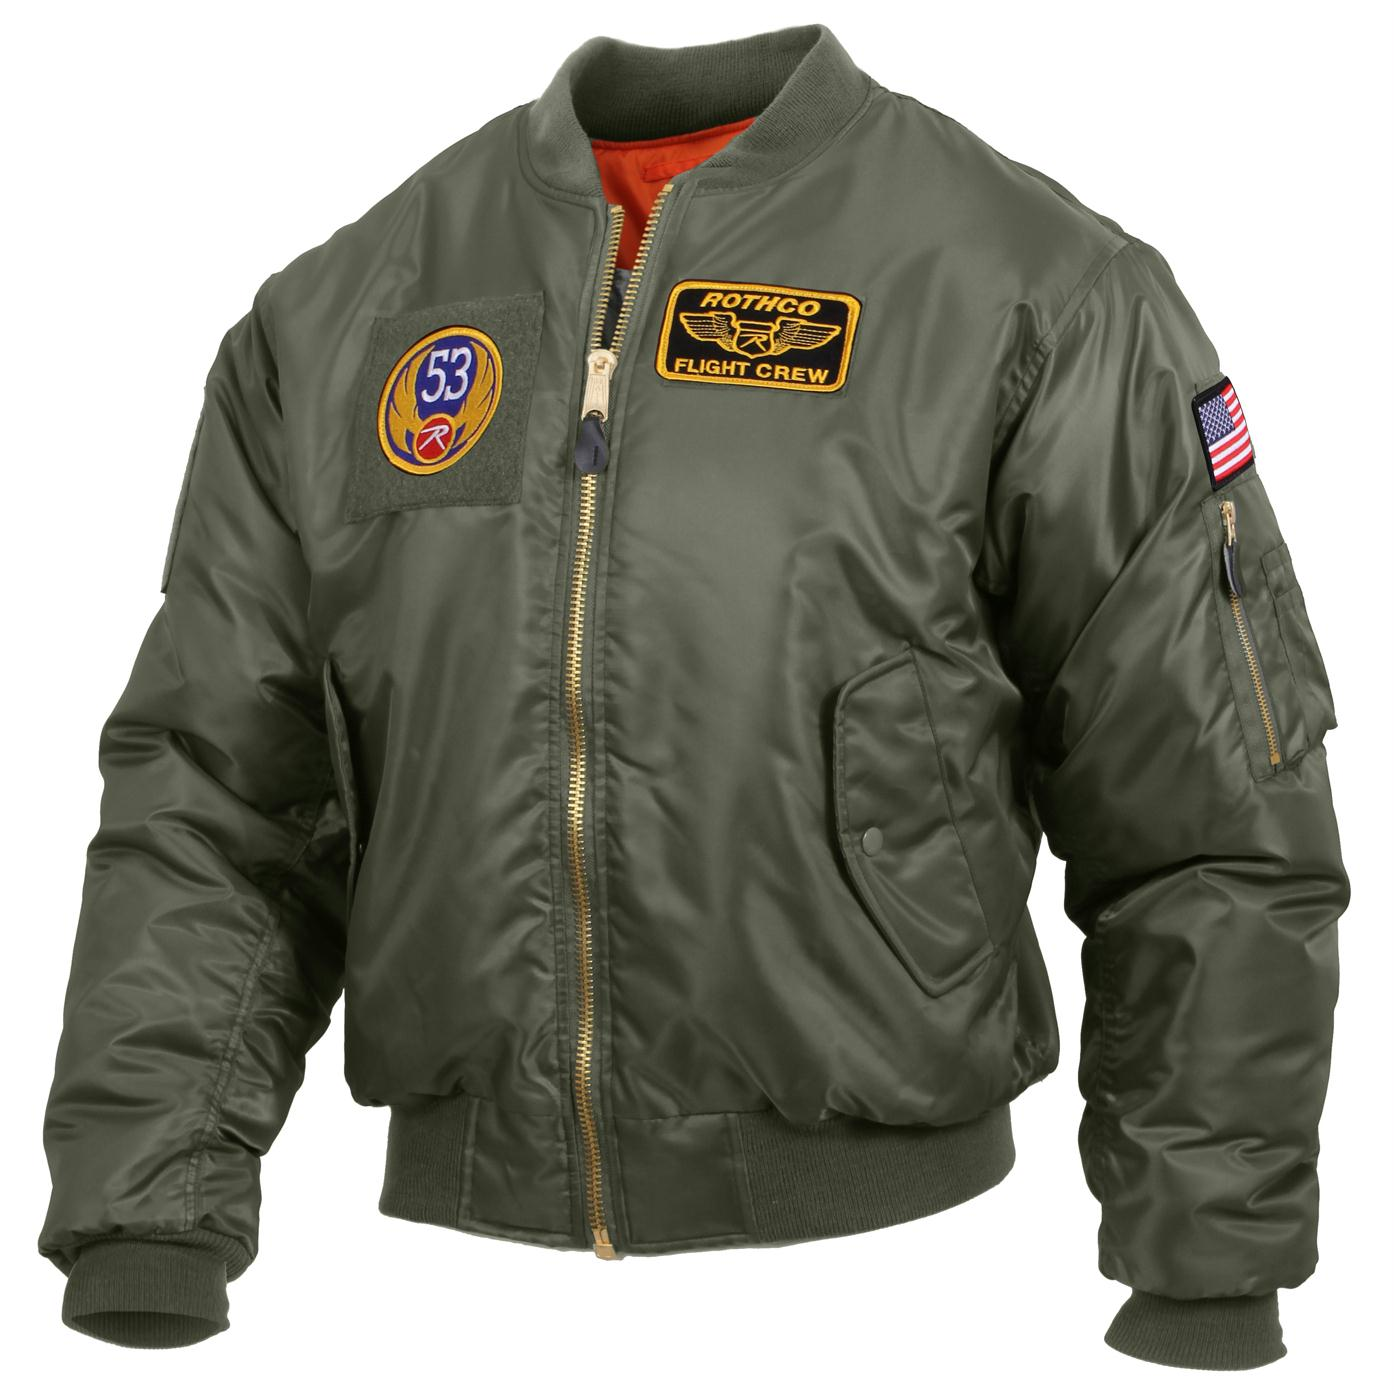 Rothco MA-1 Flight Jacket with Patches - Sage Green / M